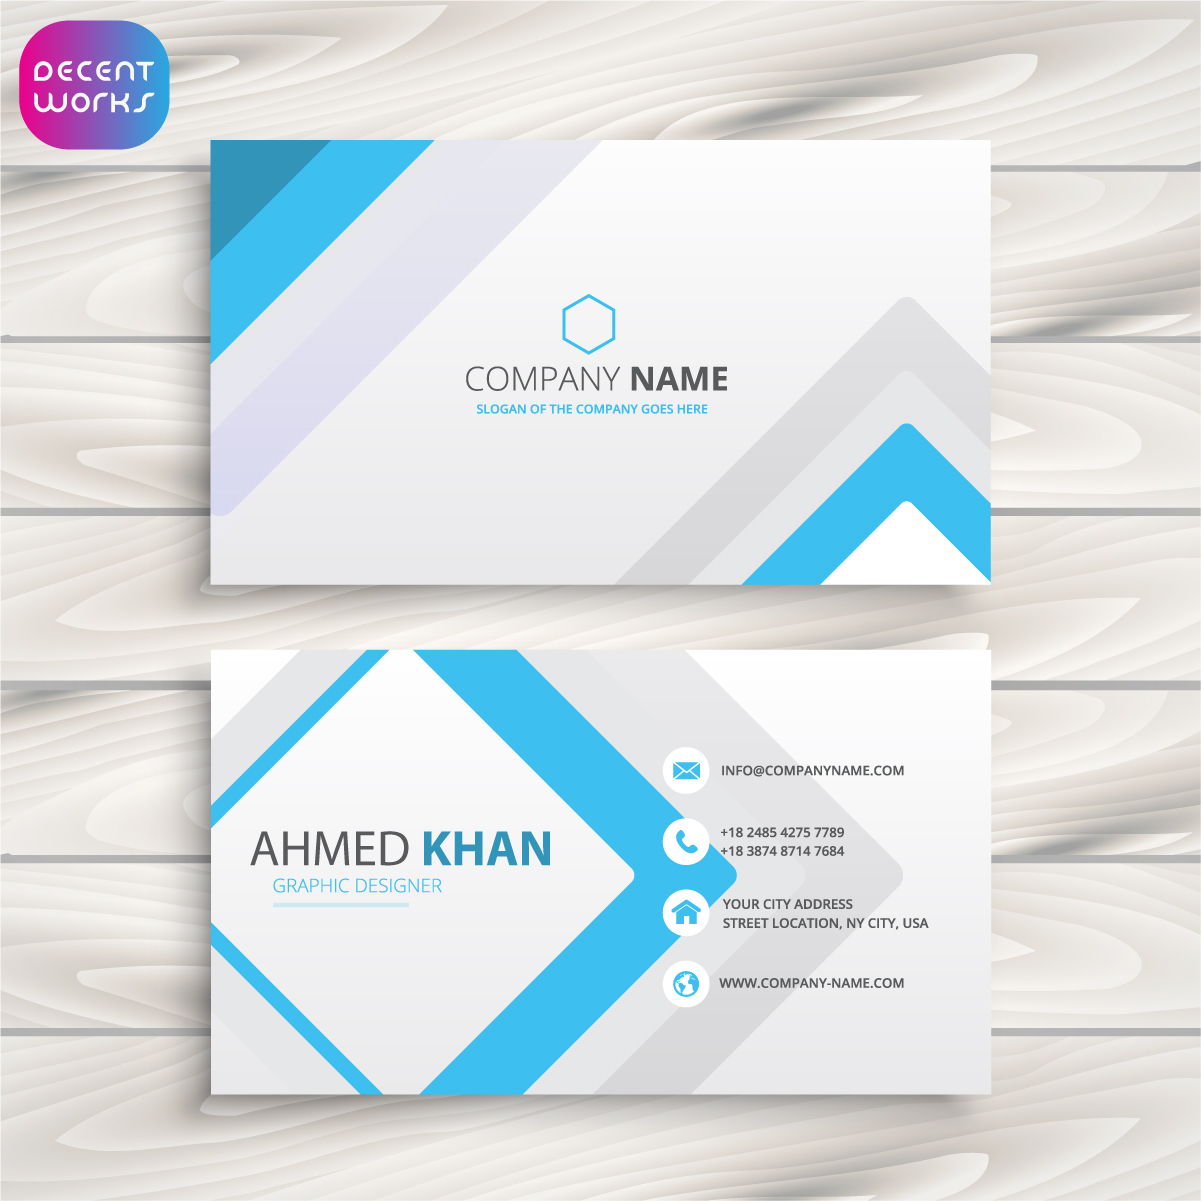 4 logo with business card high quality transparent background in 4 logo with business card high quality transparent background in 24 hours free vector colourmoves